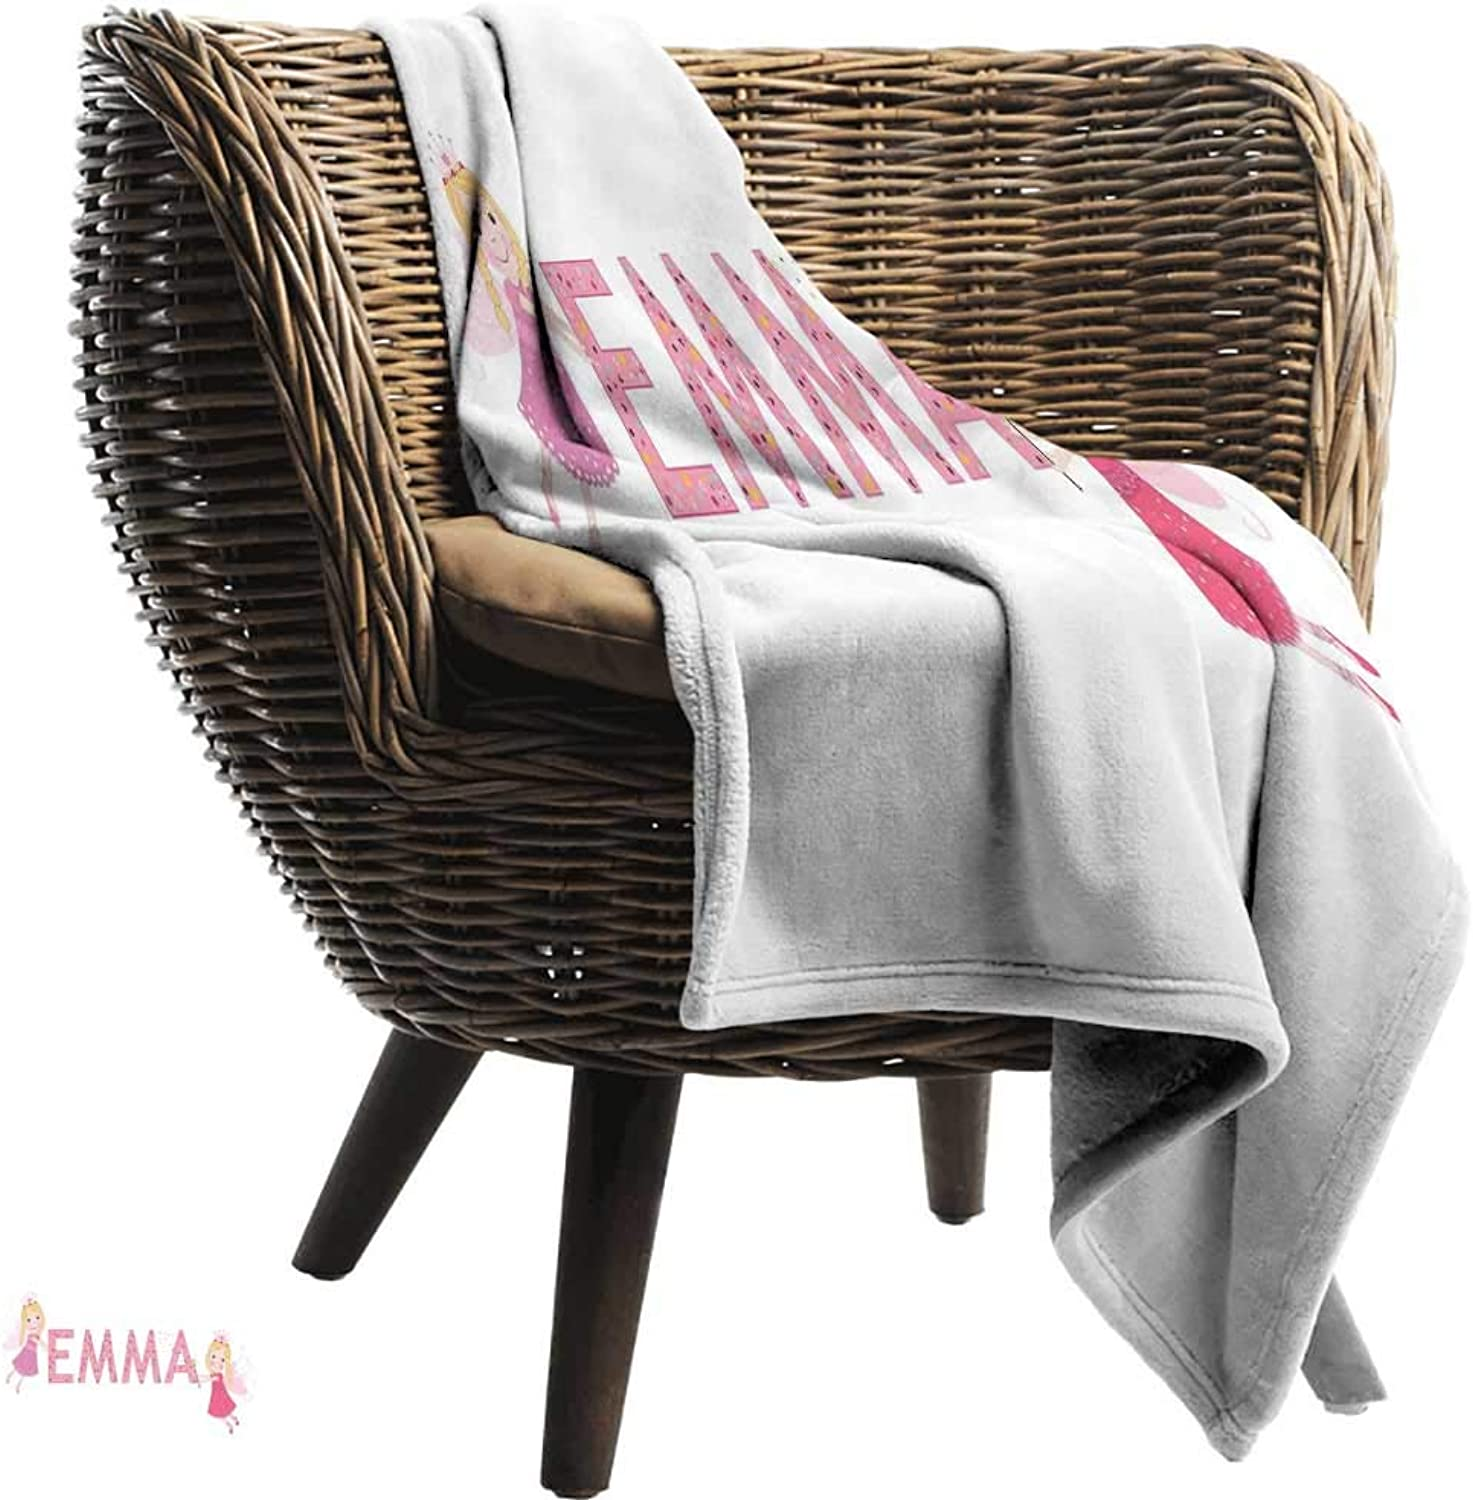 Emma King Size Weighted Blanket Cute Fairy Princesses Holding a Popular Widespread Girl Name with Polka Dots Pattern